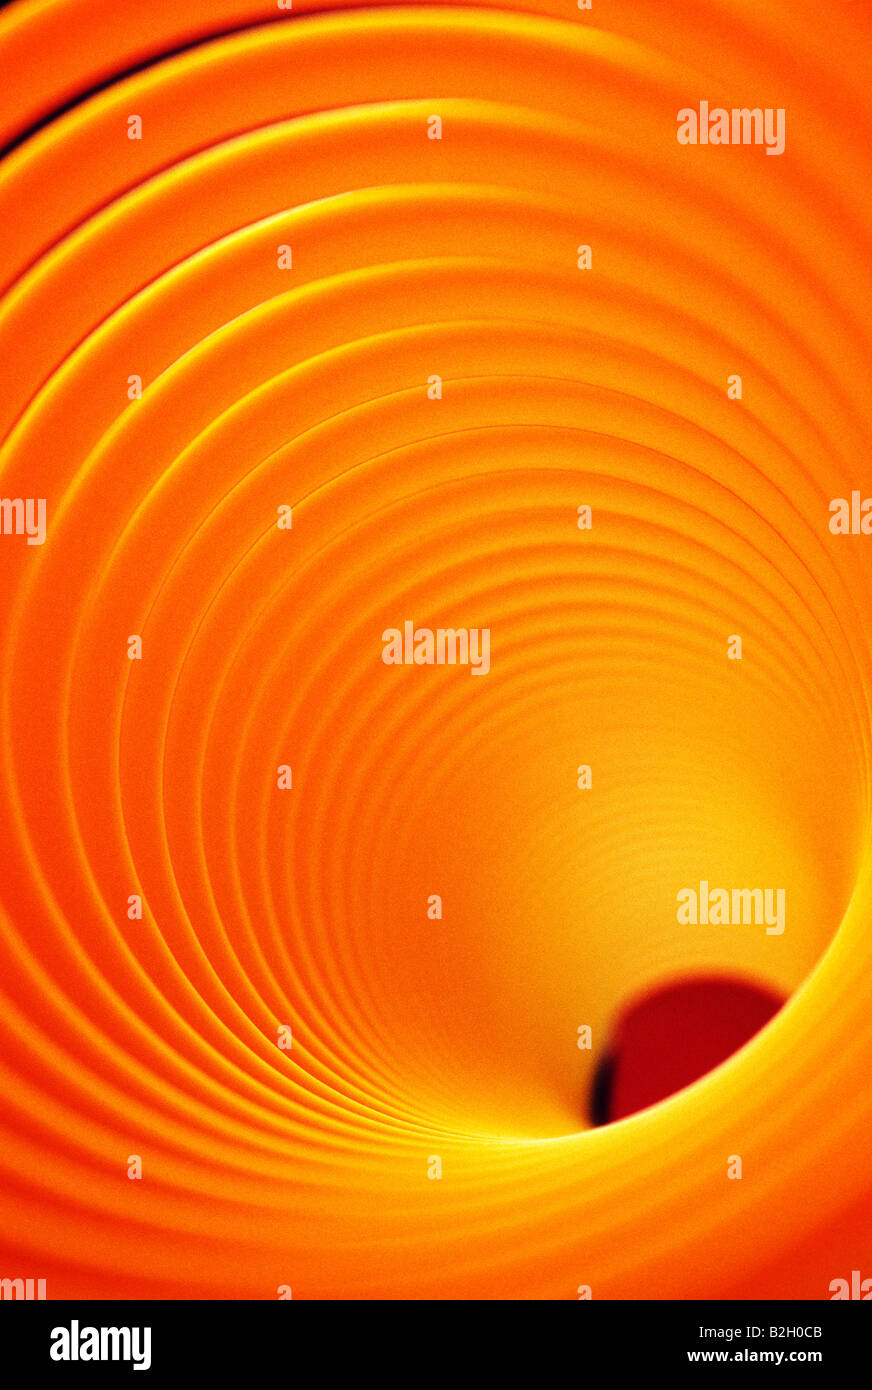 Abstract close up view of a 'Slinky' toy - Stock Image